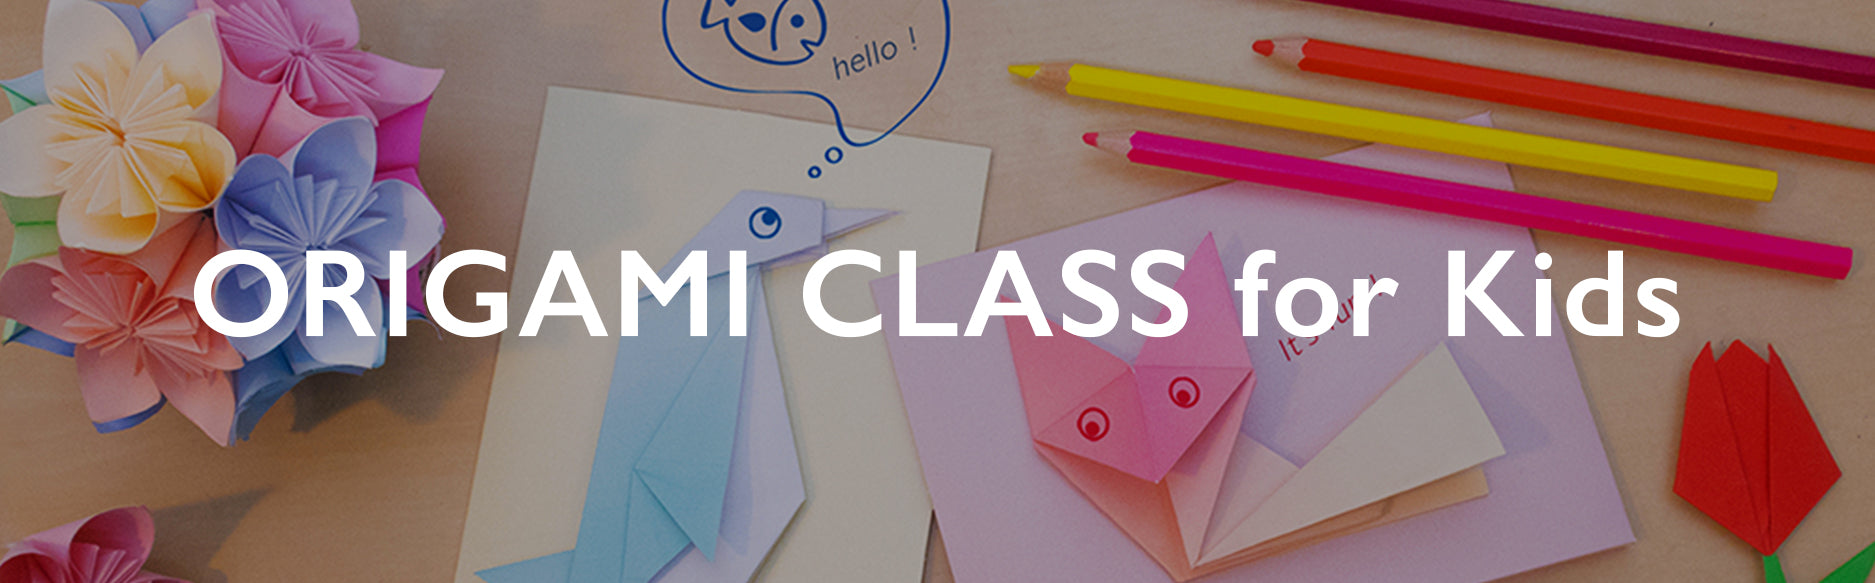 Flexible In store Origami Class for Kids in London